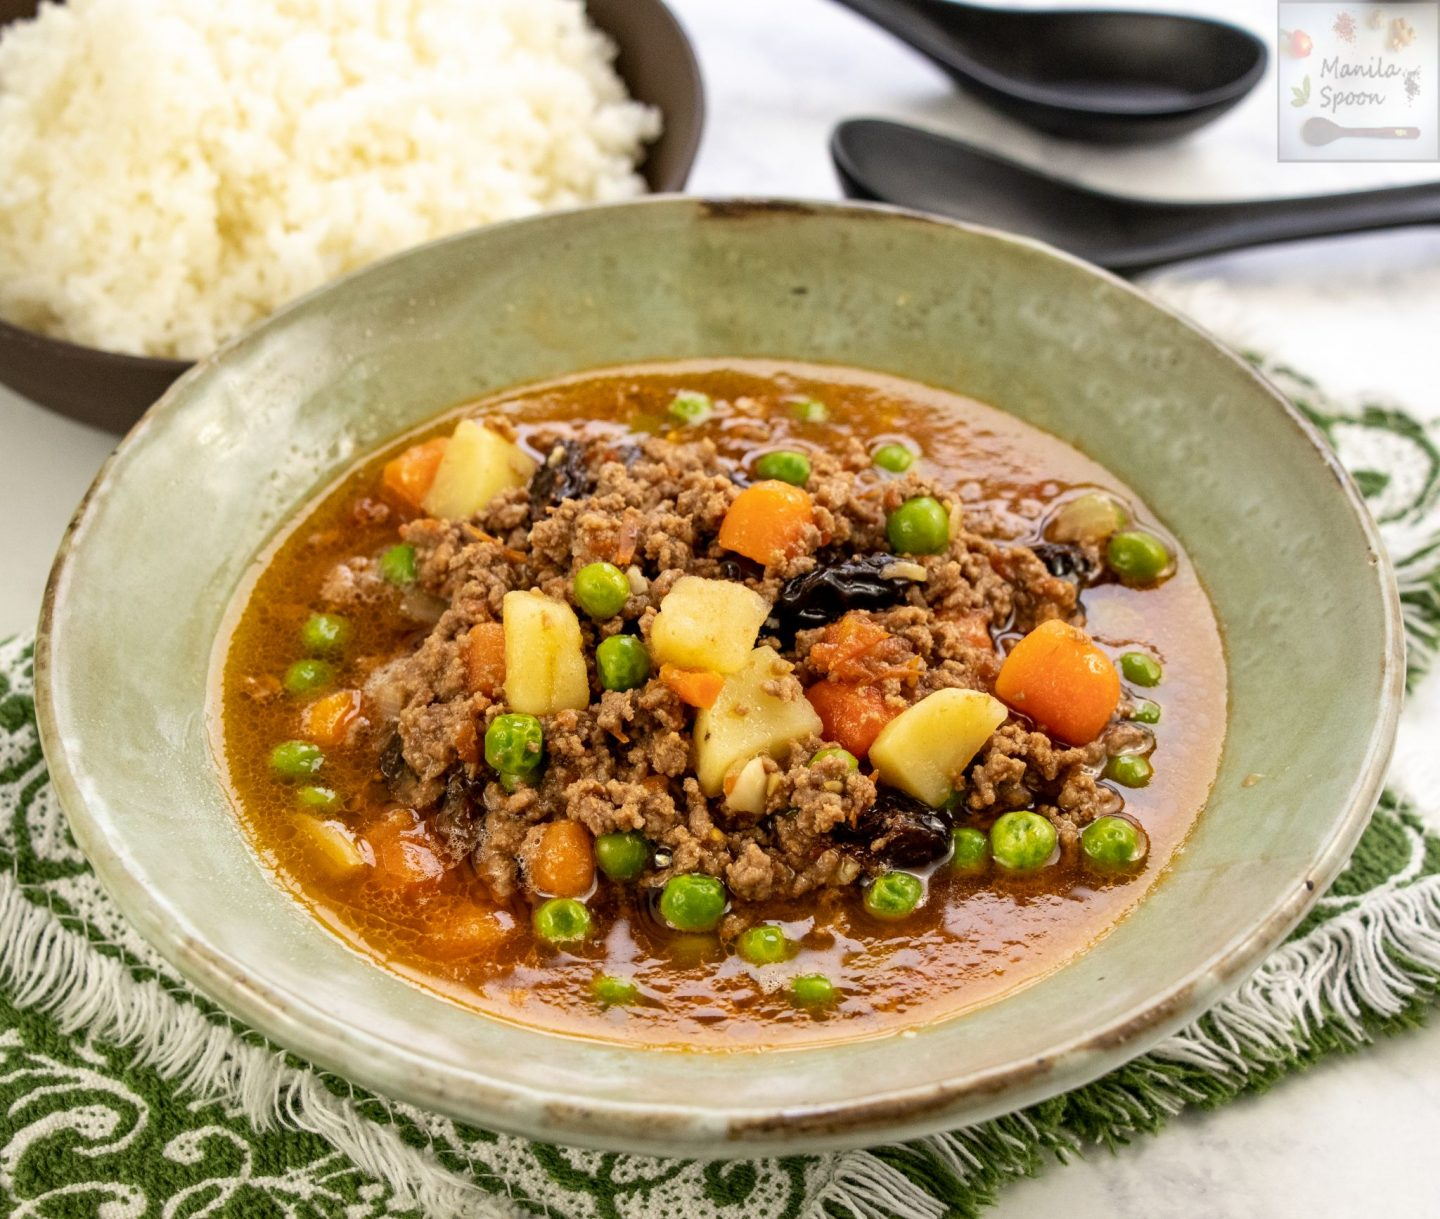 Instant Pot Filipino-style Picadillo